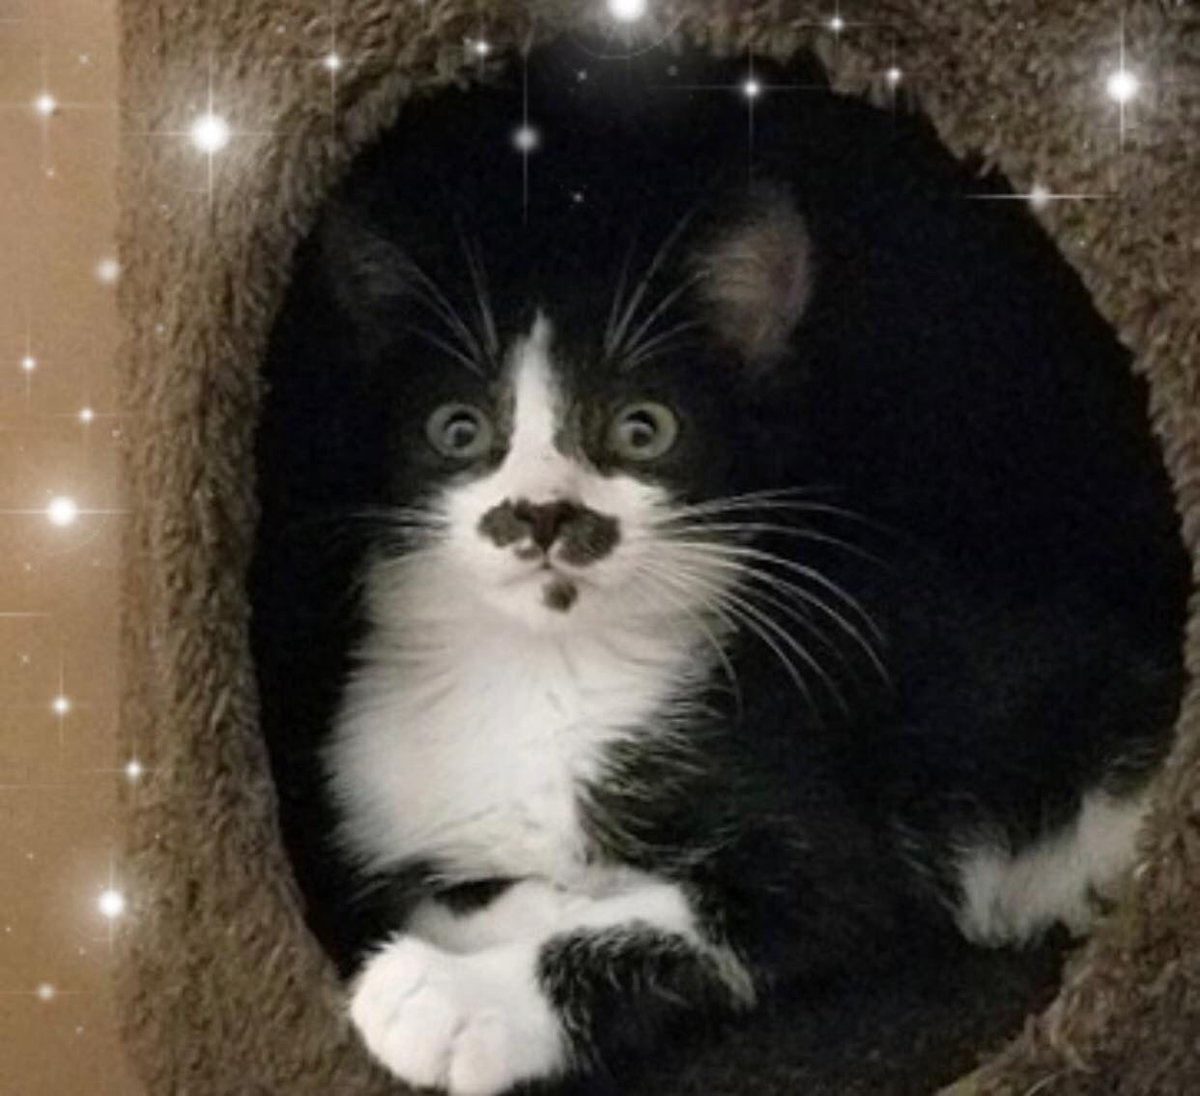 I'm Tashi! Do you like my mustache? Foster mom says it's adorbs! I'm full of energy and love to play with my furiends, but I'm also so happy to come snuggle up with my hooman and give lots of cuddles and purrs! Adopt me, MEOW! http://StFrancisRescue.org #AdoptDontShop